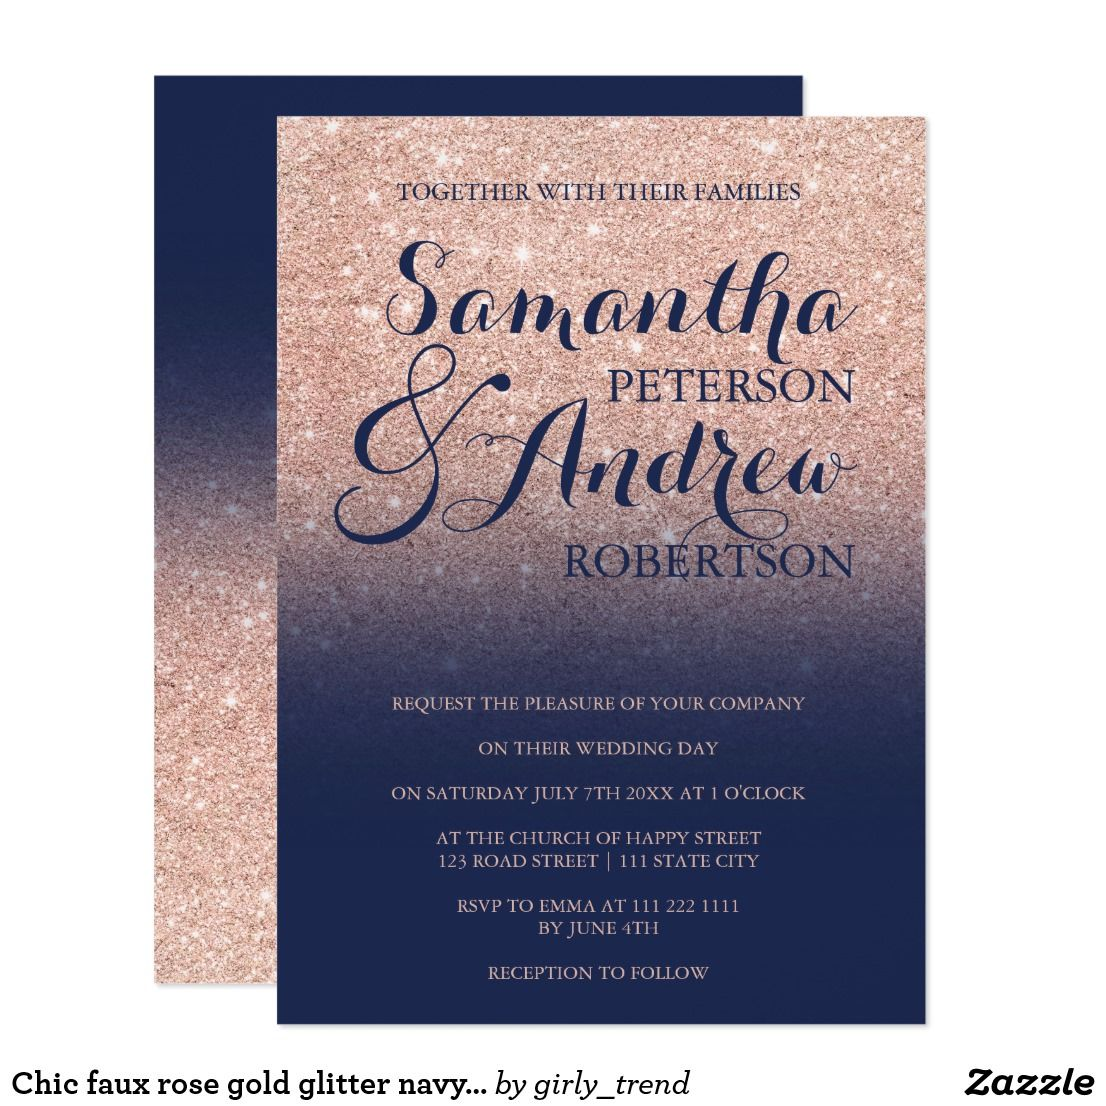 chic faux rose gold glitter navy blue wedding card chic faux rose gold glitter navy blue wedding invitation suite collection a modern pretty faux rose